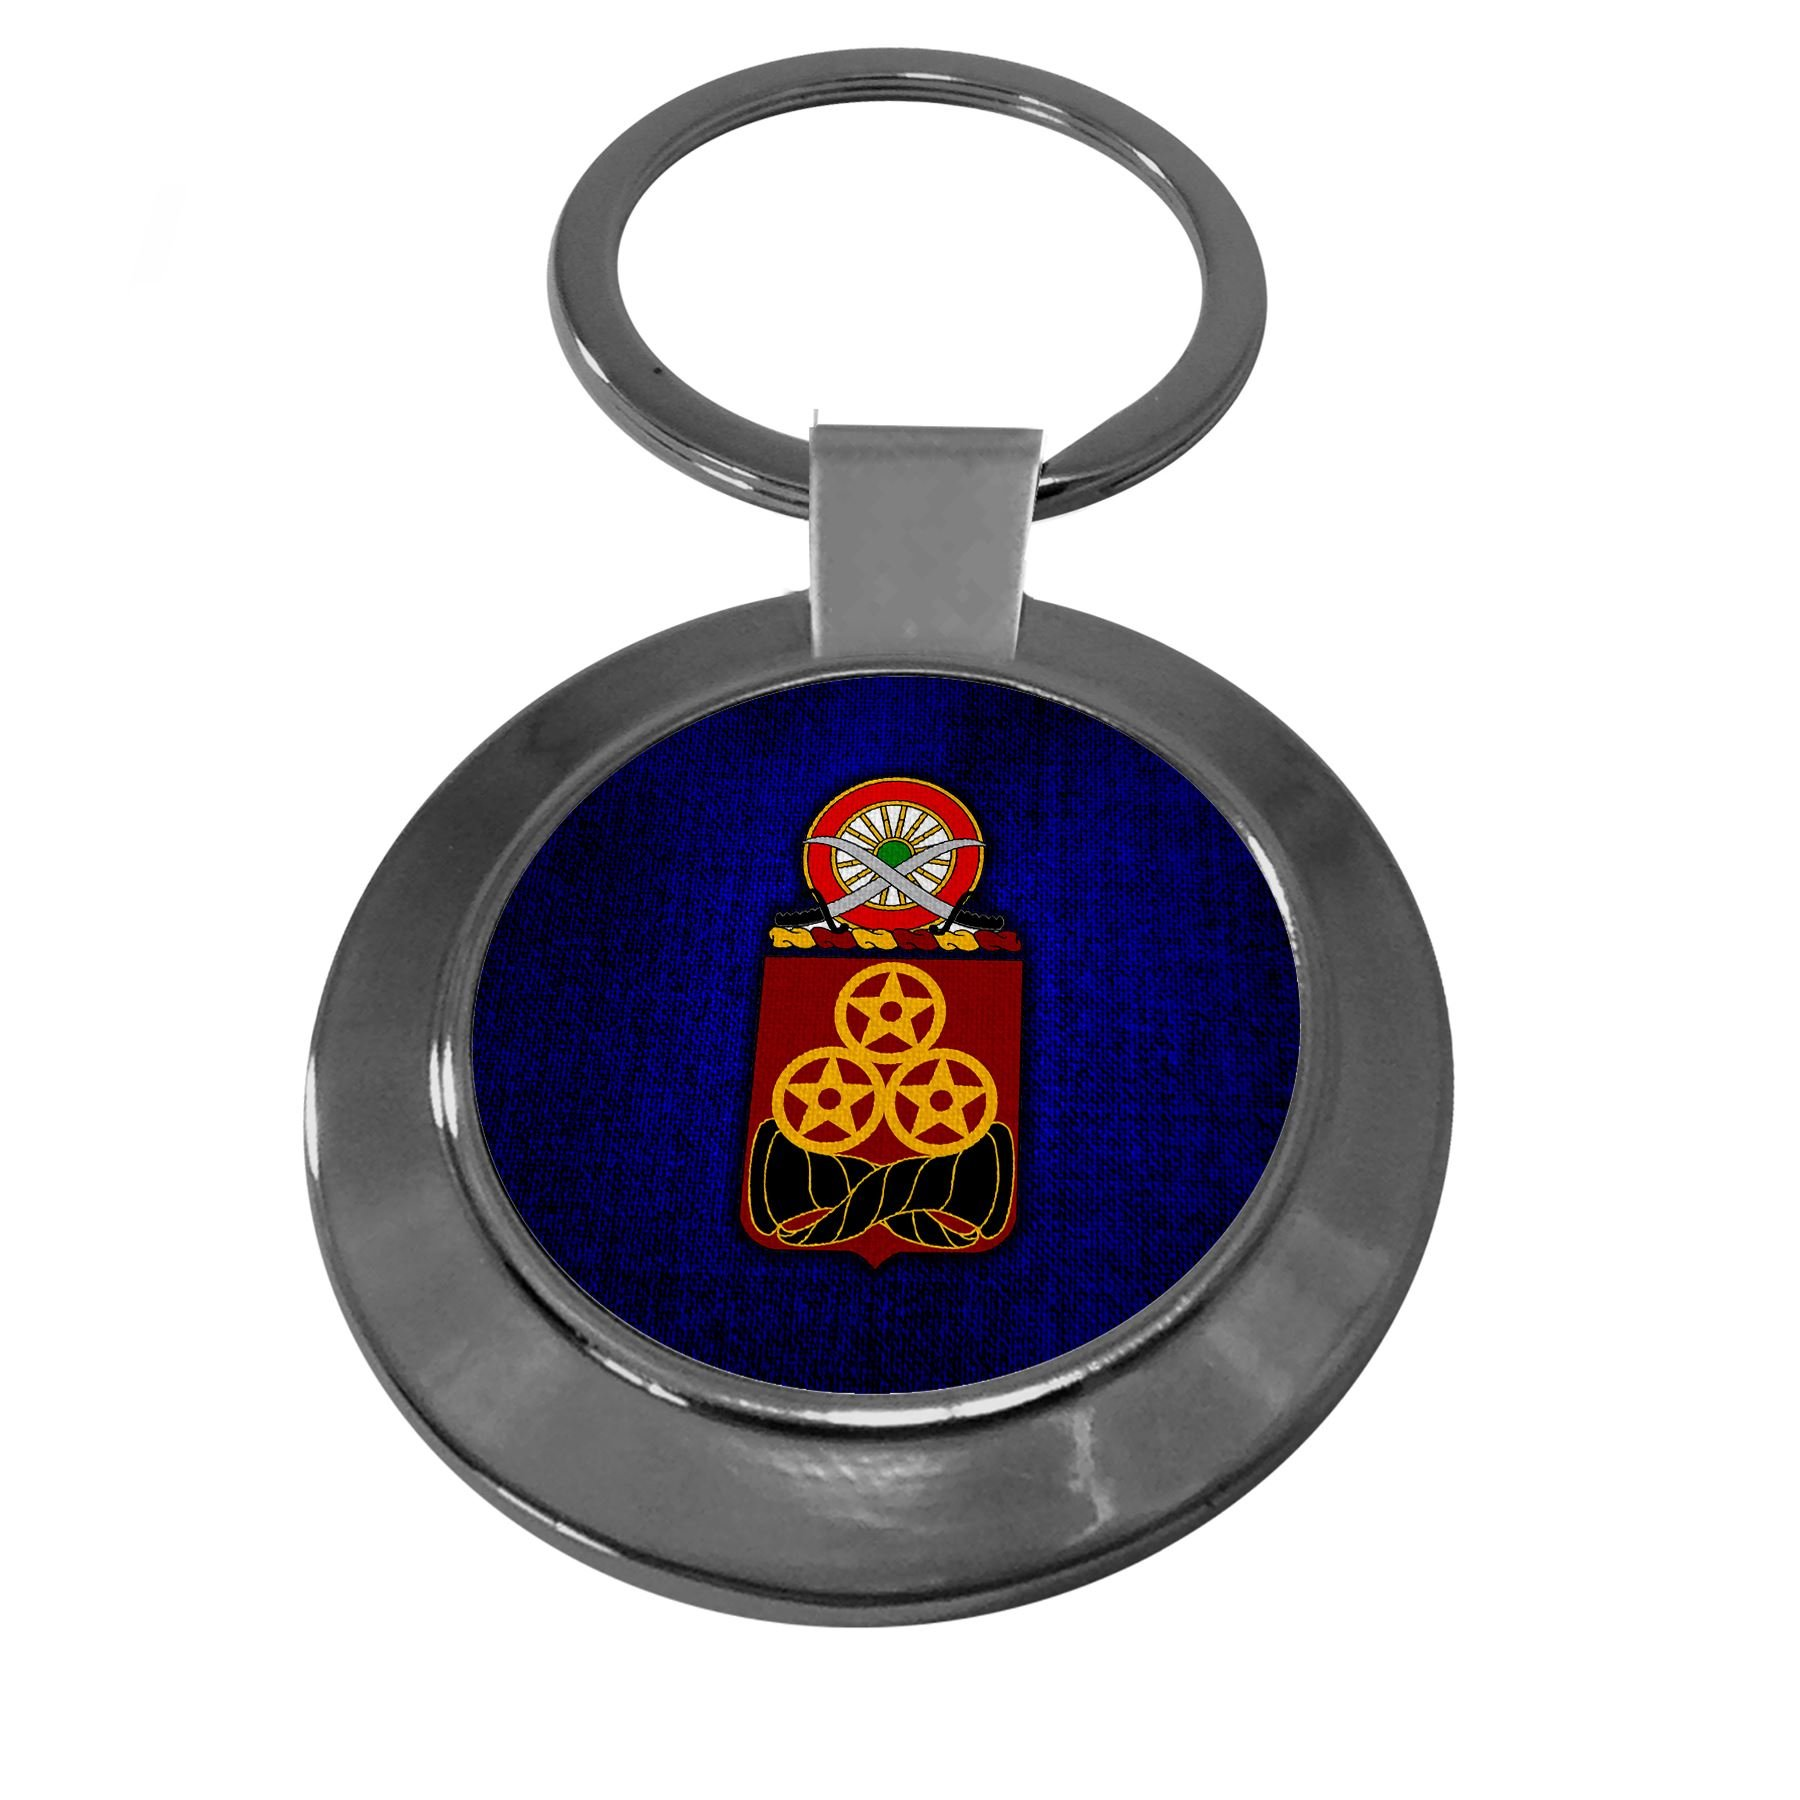 Premium Key Ring with U.S. Army 6th Transportation Battalion, coat of arms